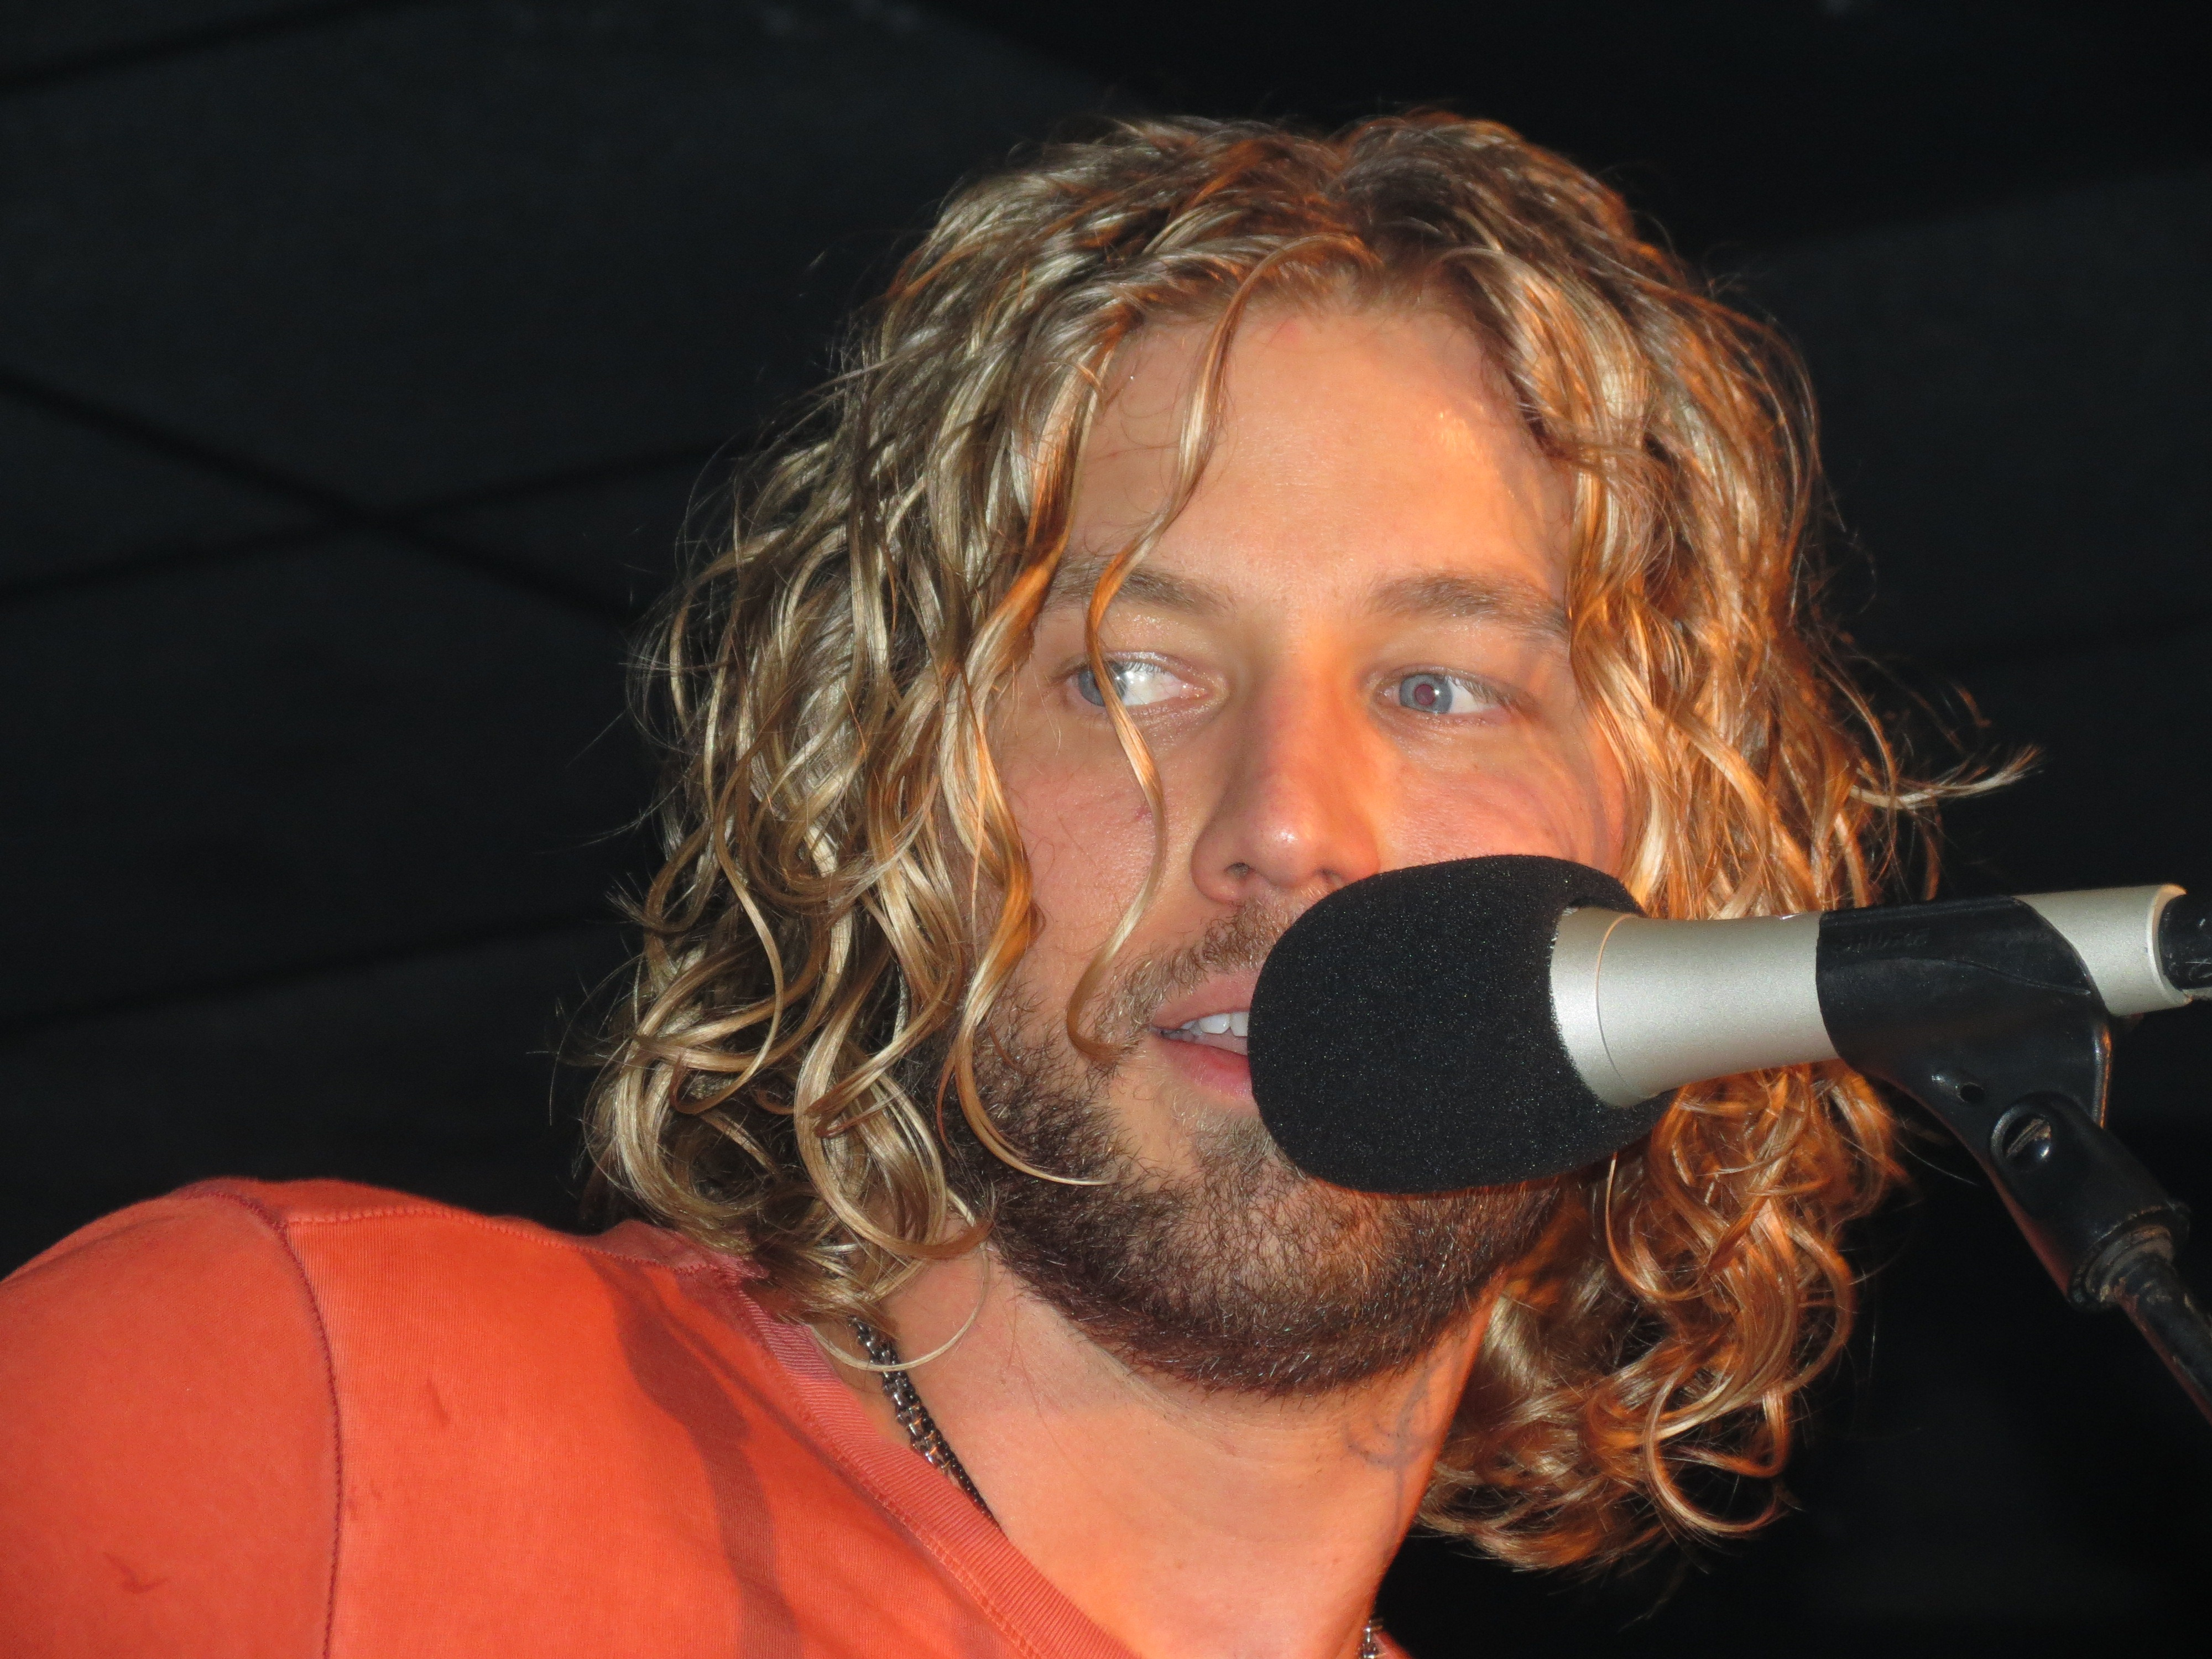 Casey james returns to american idol south florida country music photo by mike carroll altavistaventures Gallery